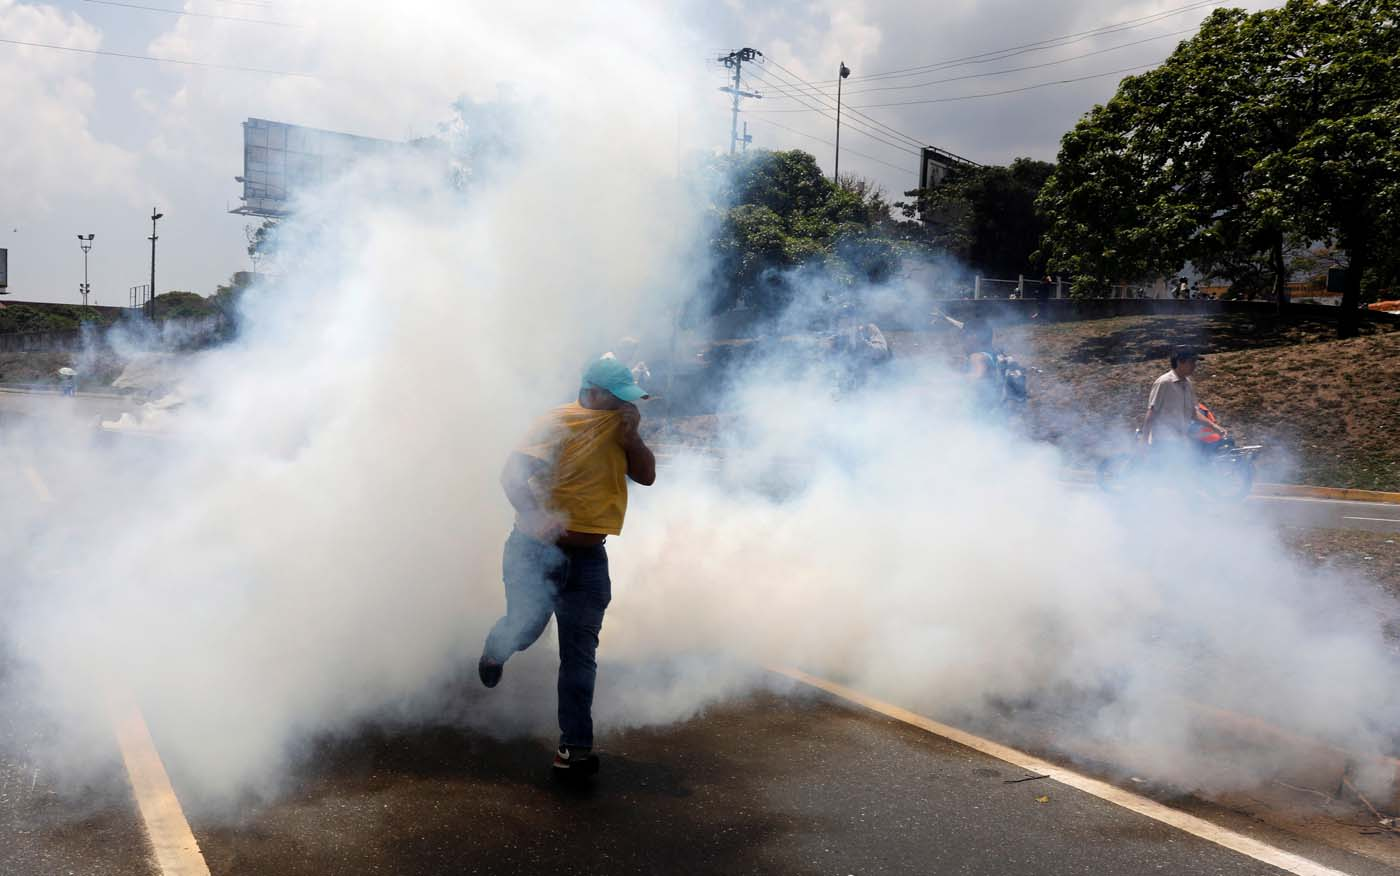 A man runs away from tear gas during a rally against Venezuela's President Nicolas Maduro's government in Caracas, Venezuela April 10, 2017. REUTERS/Carlos Garcia Rawlins